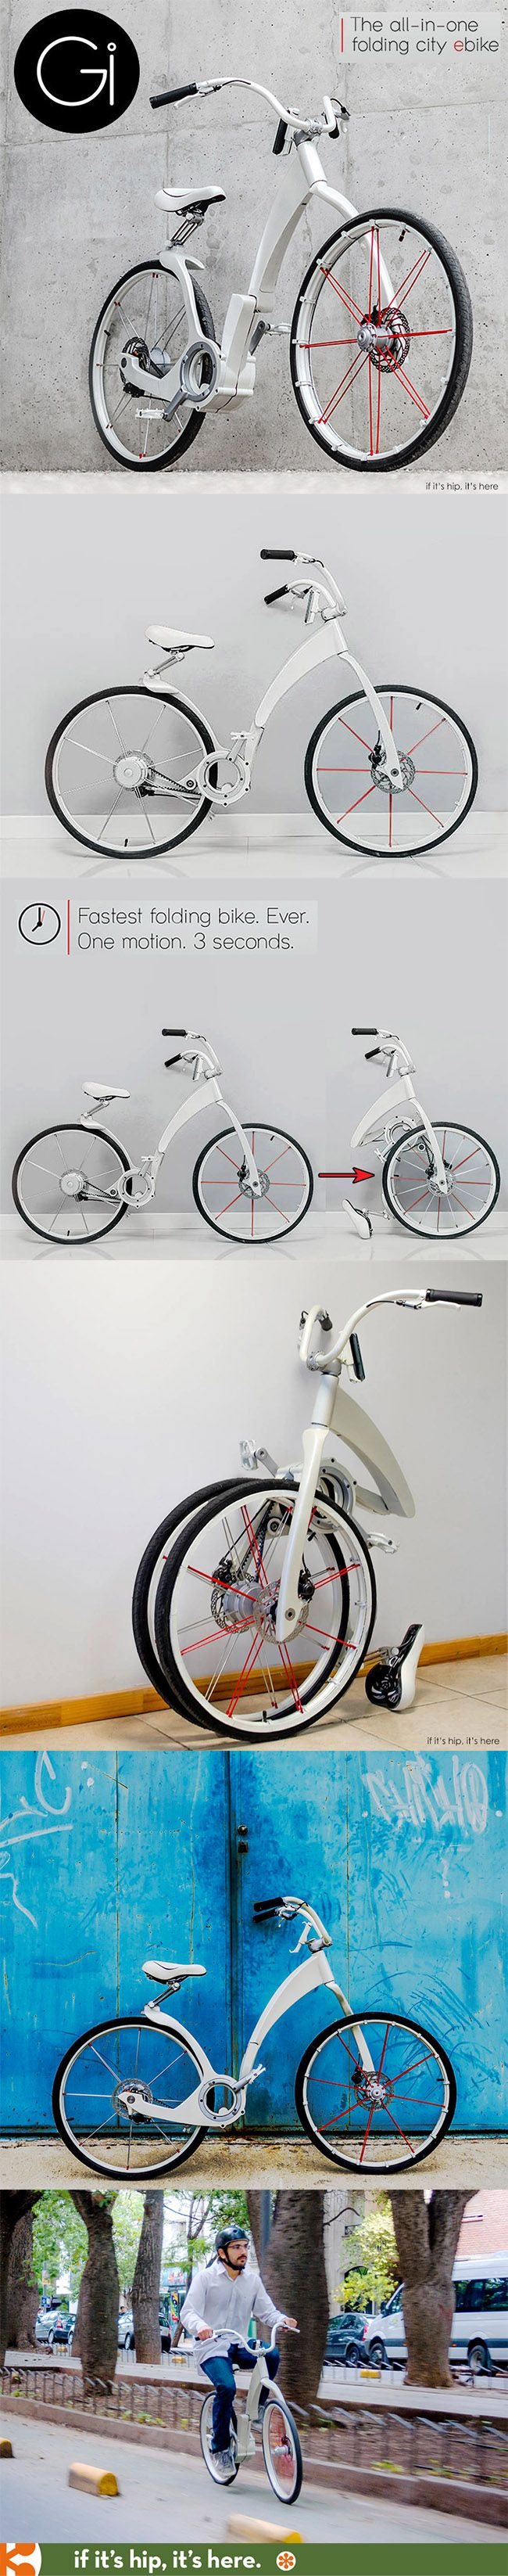 The fastest folding electric bike (3 seconds) with integrated wireless smartphone technology. So cool.